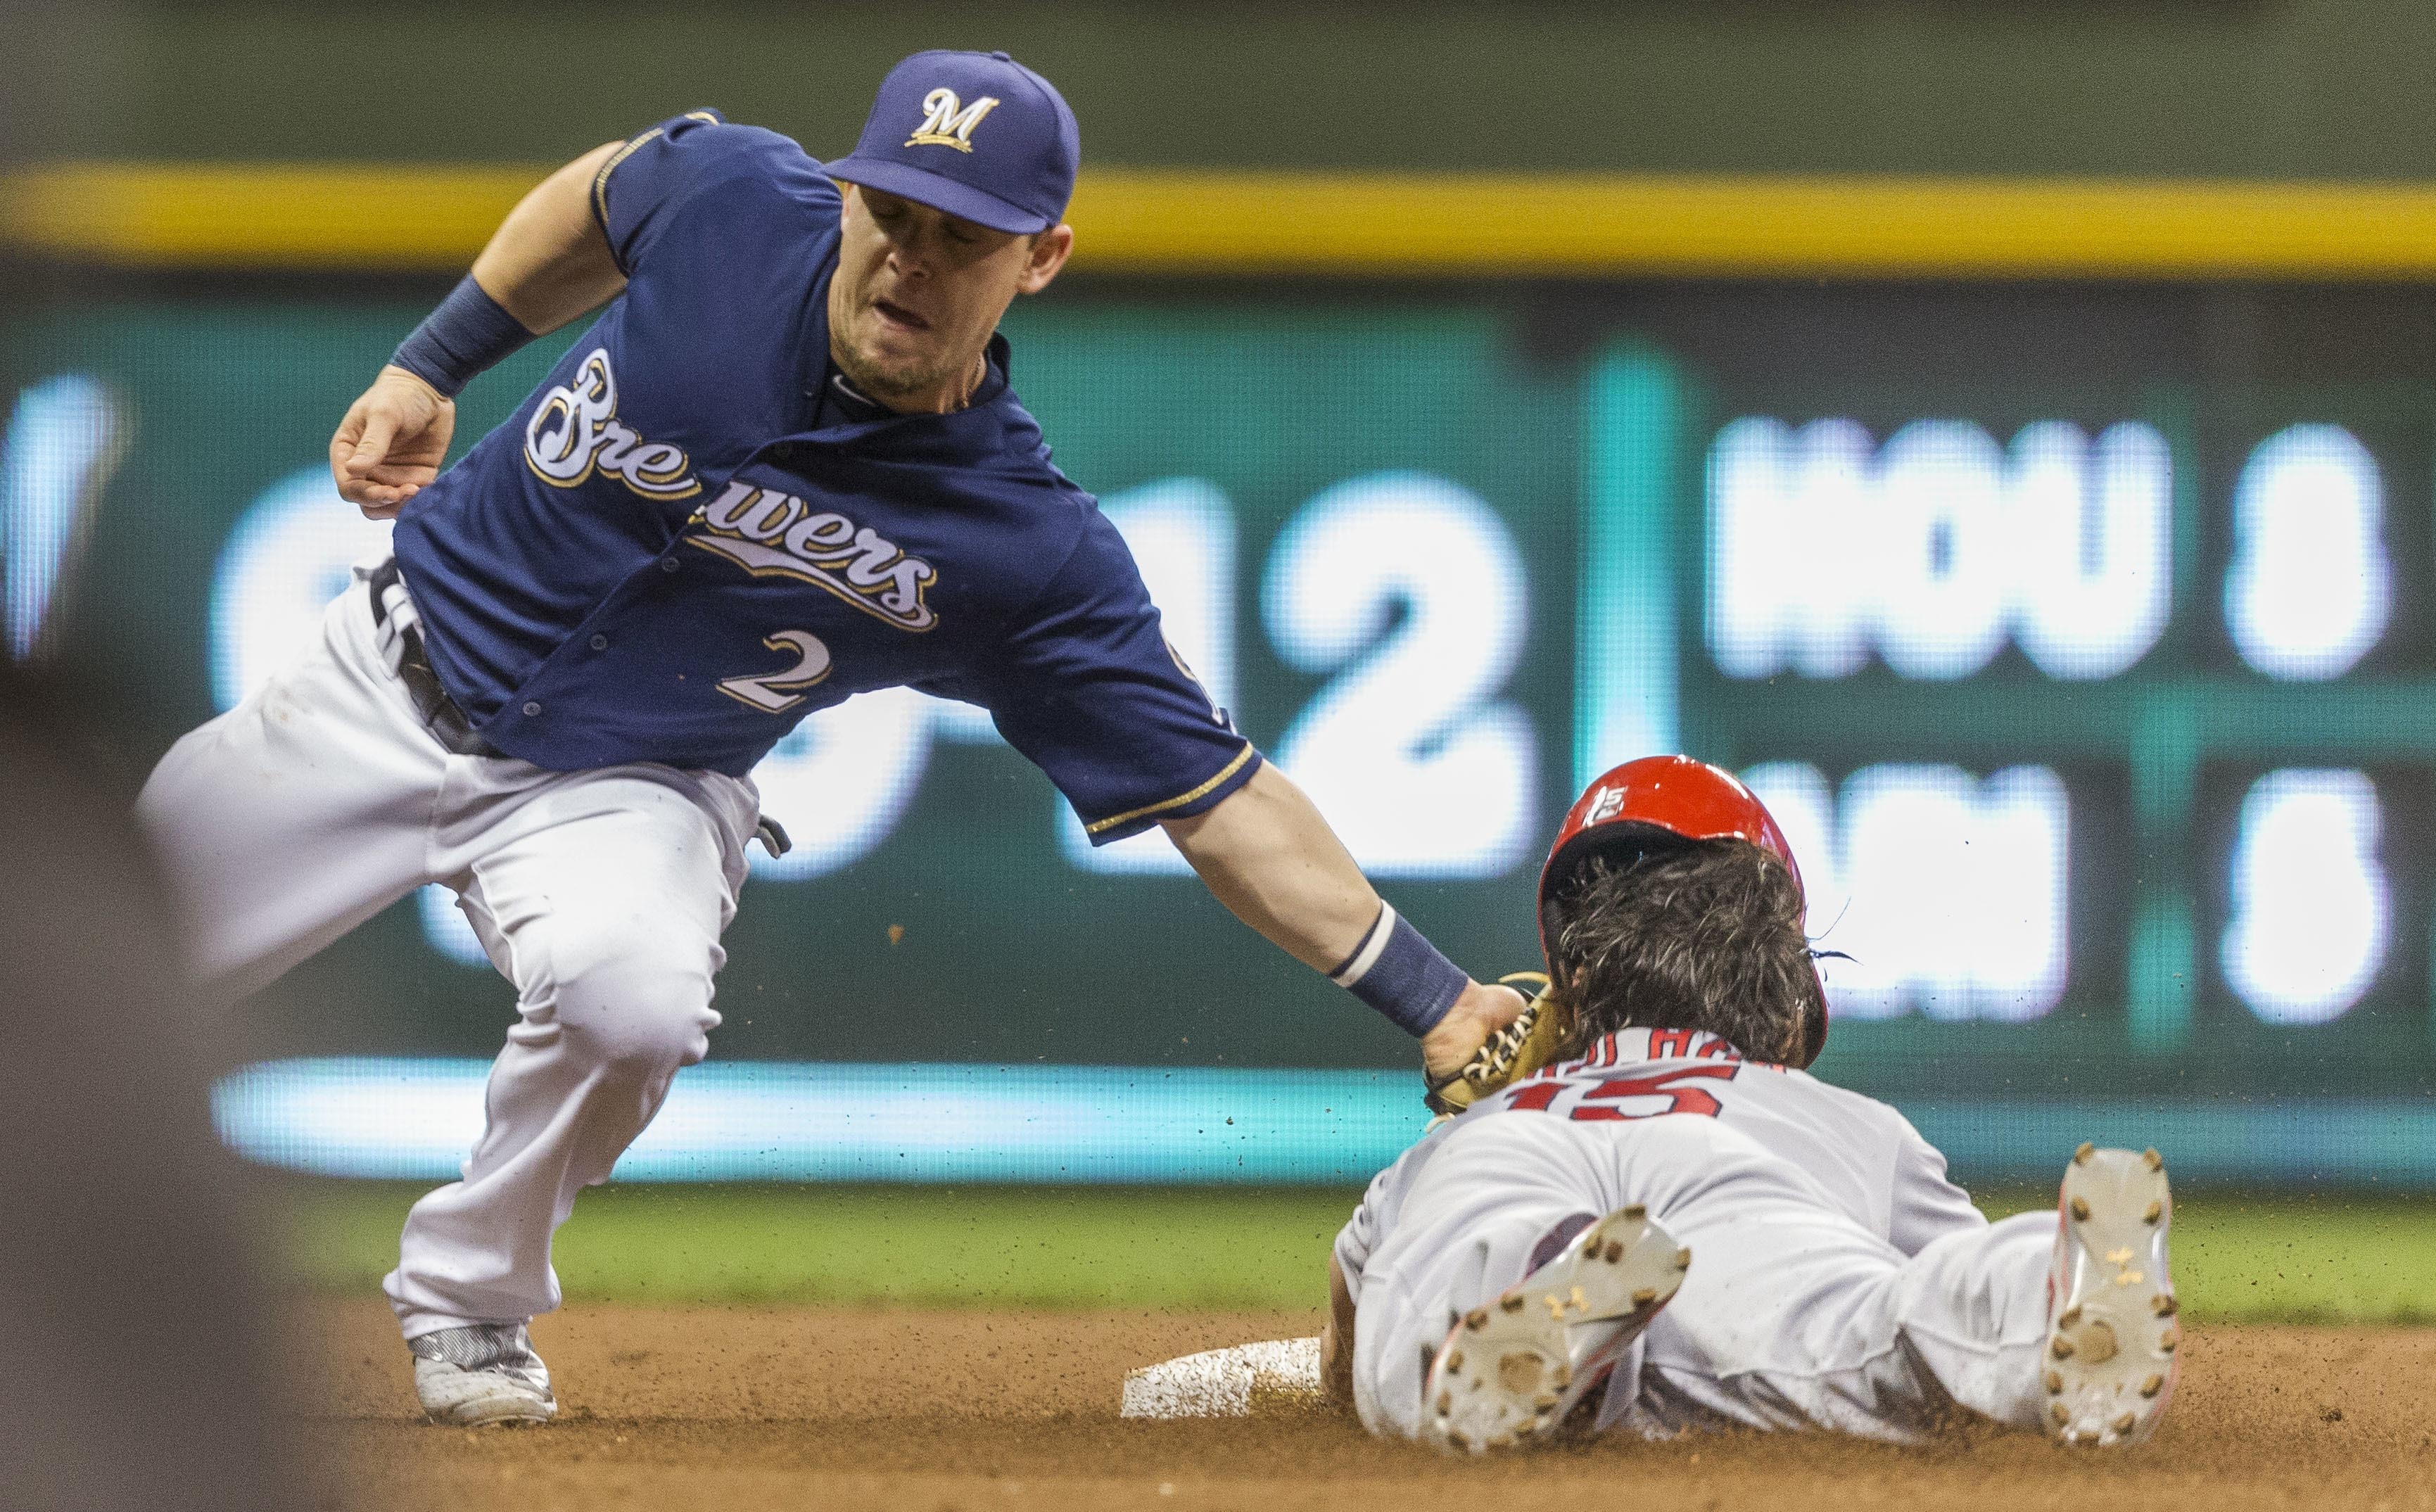 Milwaukee Brewers' Scooter Gennett tags out St. Louis Cardinals' Randal Grichuk on a steal attempt during the fourth inning of a baseball game Tuesday, May 31, 2016, in Milwaukee. (AP Photo/Tom Lynn)